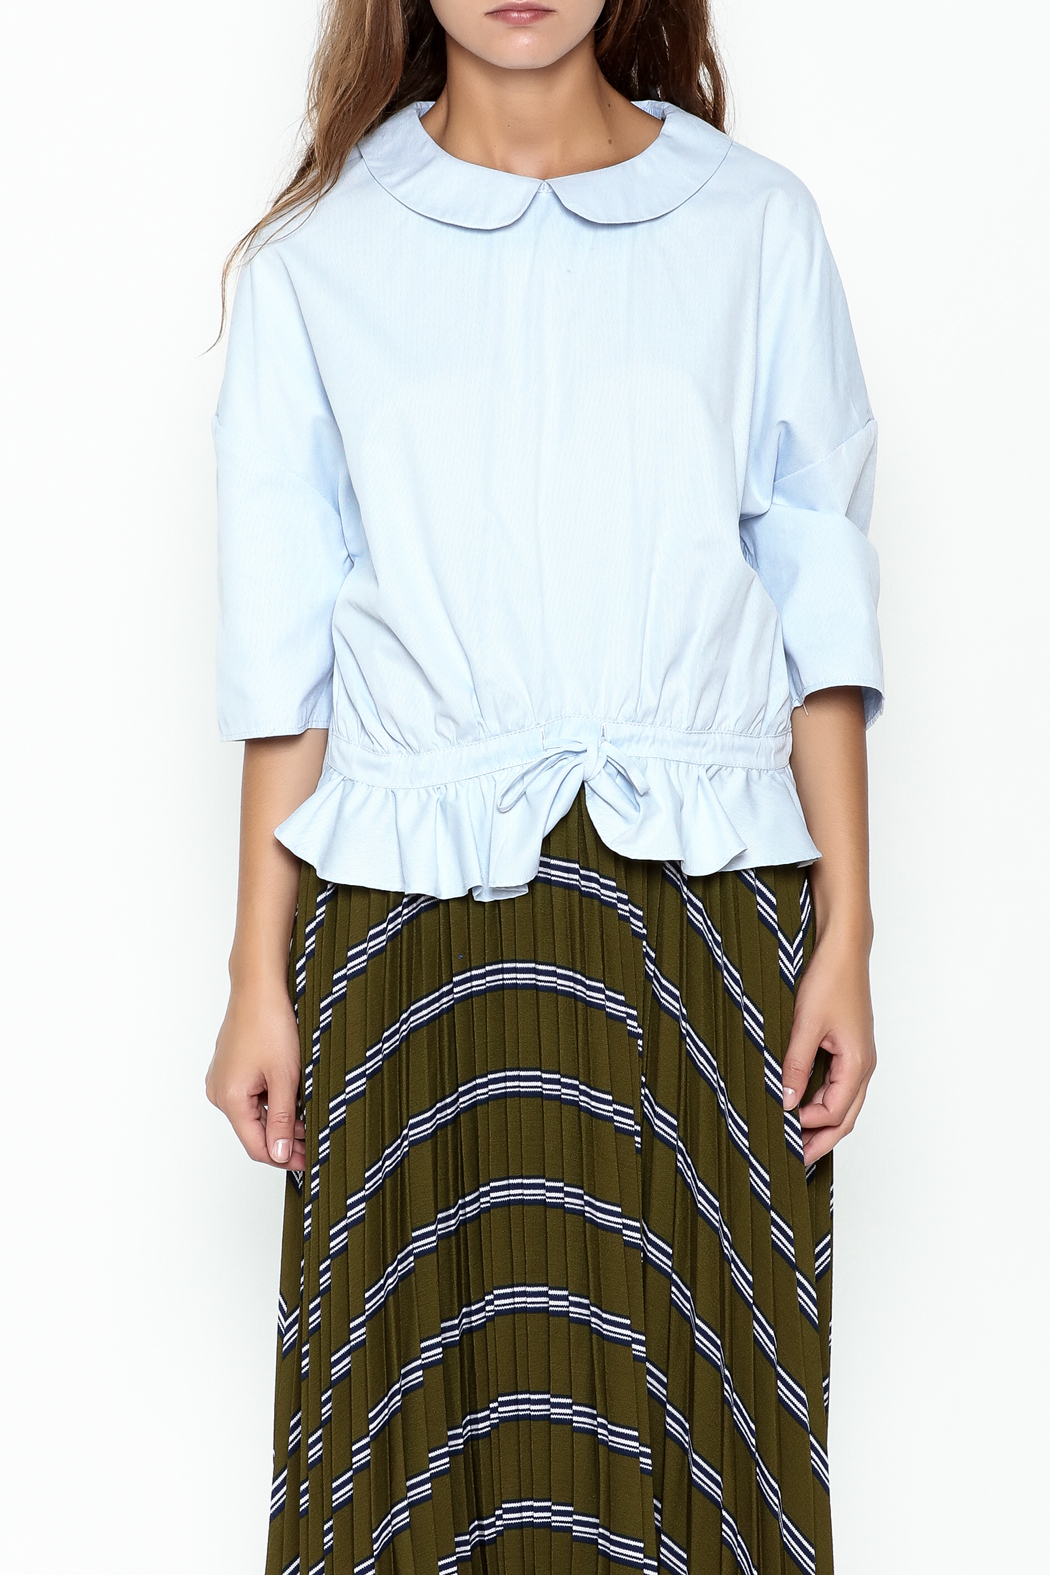 English Factory Ruffle Blue Ring Top - Front Full Image